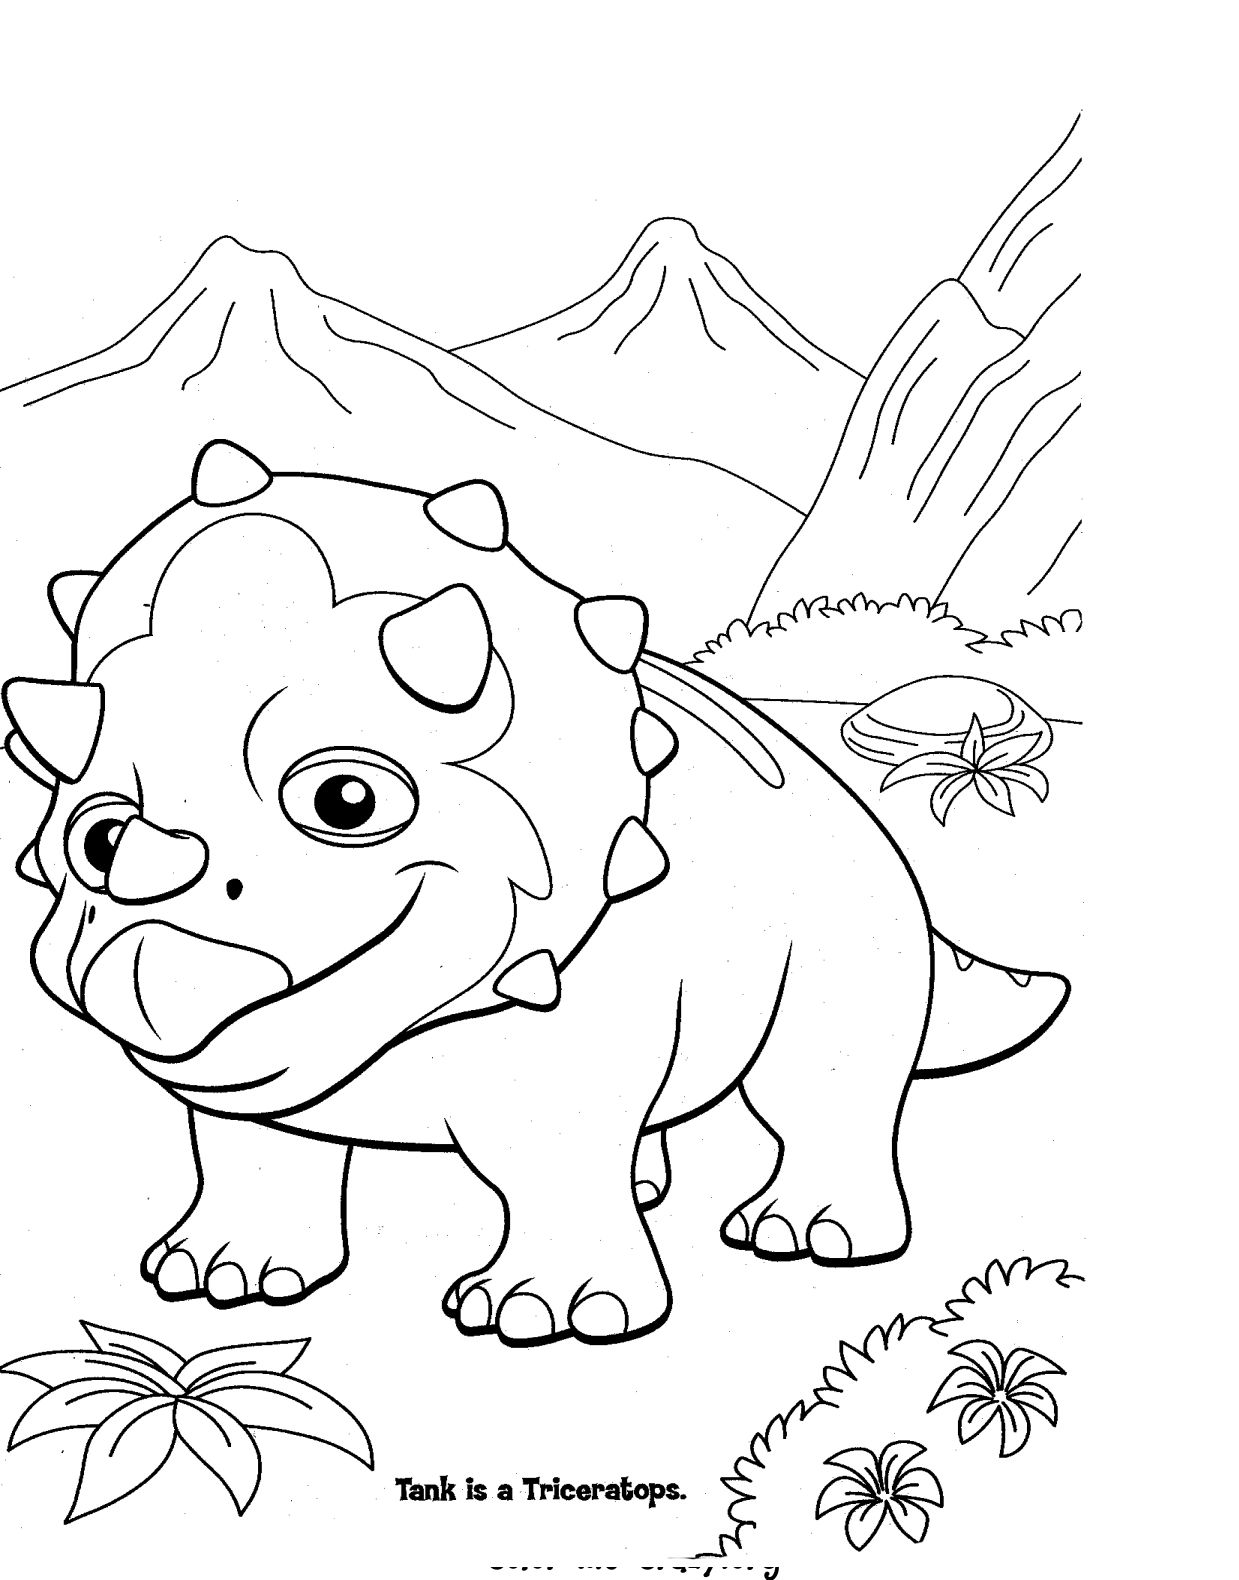 colouring dinosaur pictures the good dinosaur coloring pages disneyclipscom pictures dinosaur colouring